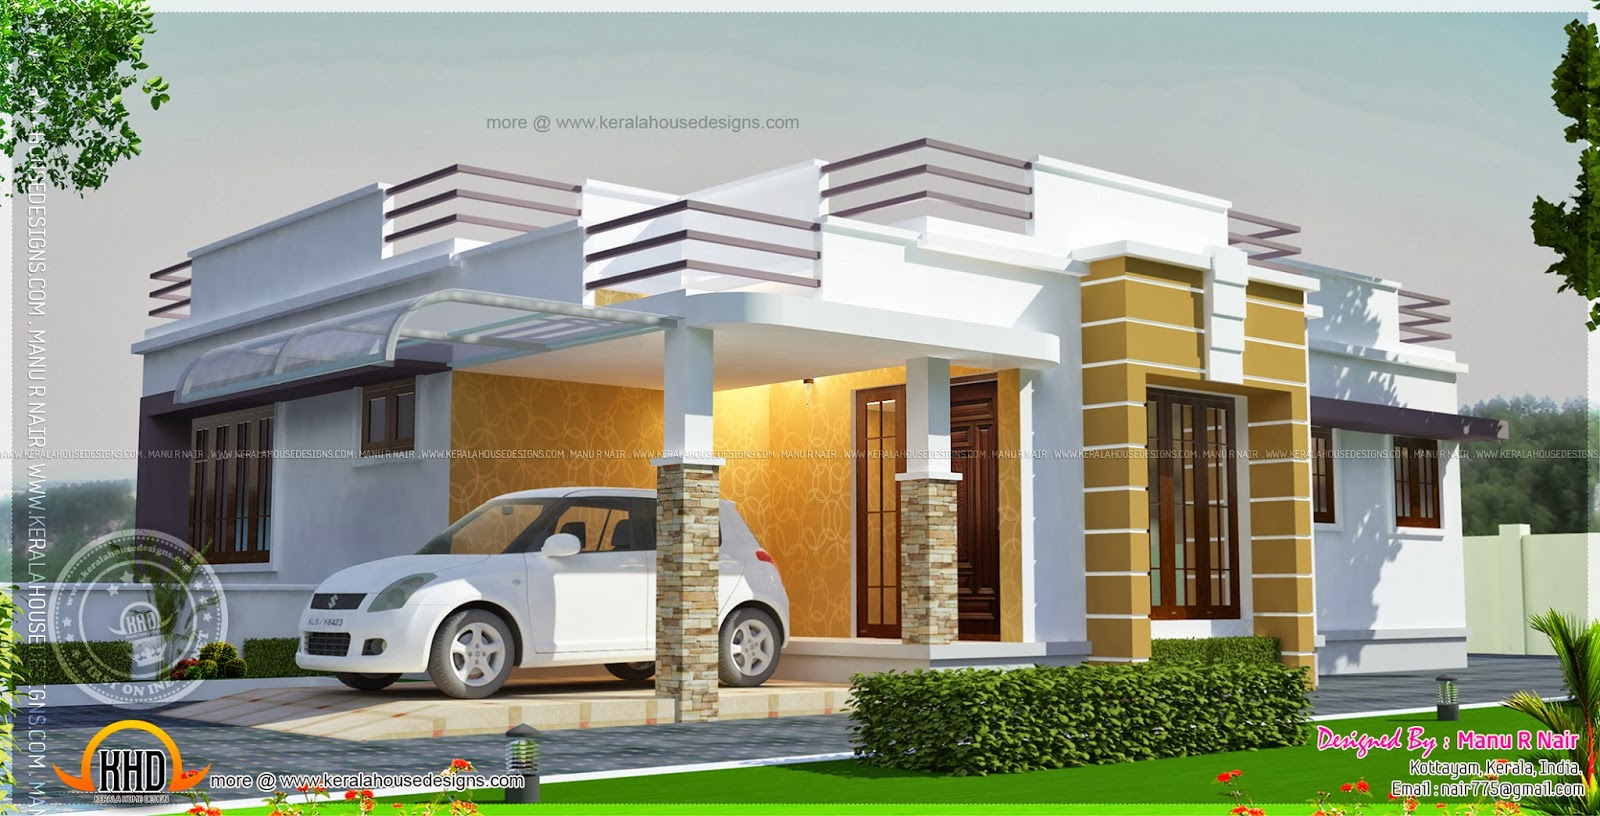 This proposed house is located at kottayam kerala House photos gallery